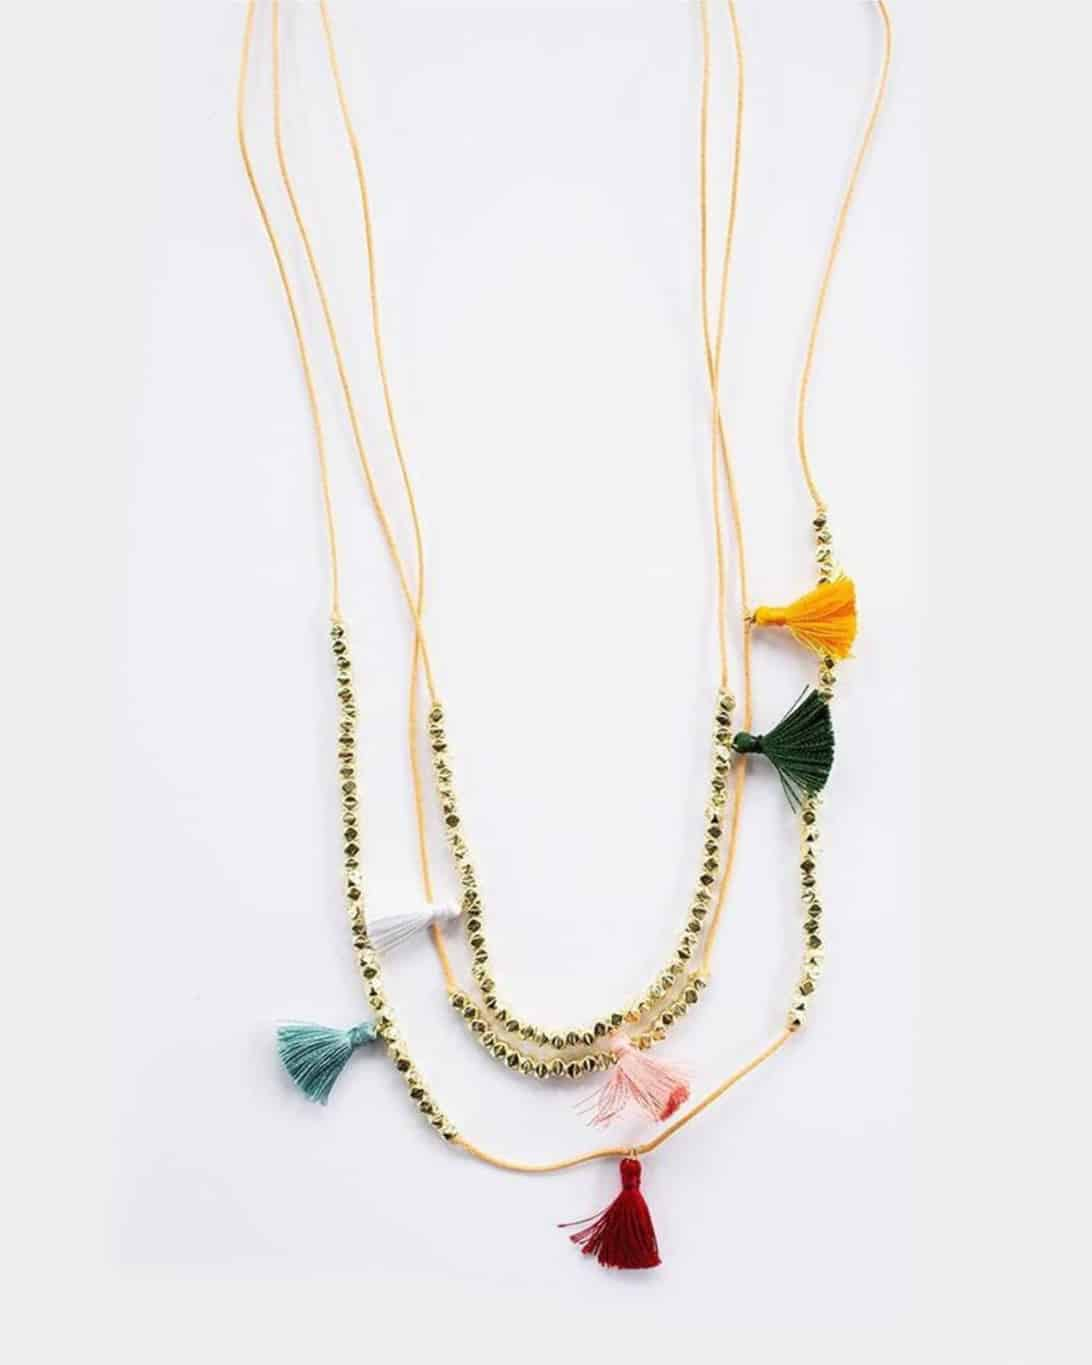 Gold chain necklace with colorful tassels